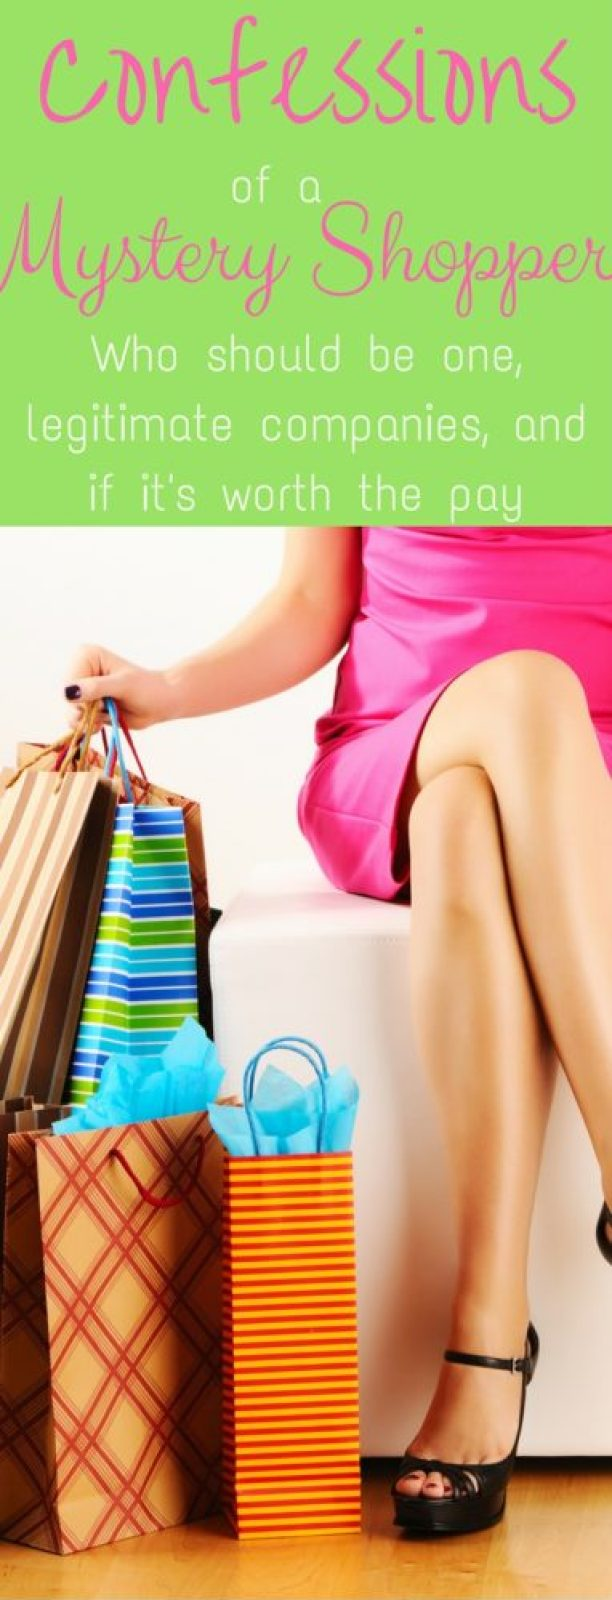 Confessions of a Mystery Shopper: Is Myster Shopping RIght for you? Find legitimate mystery shopping companies, how much you can expect to make, and if you are a good fit in this post!